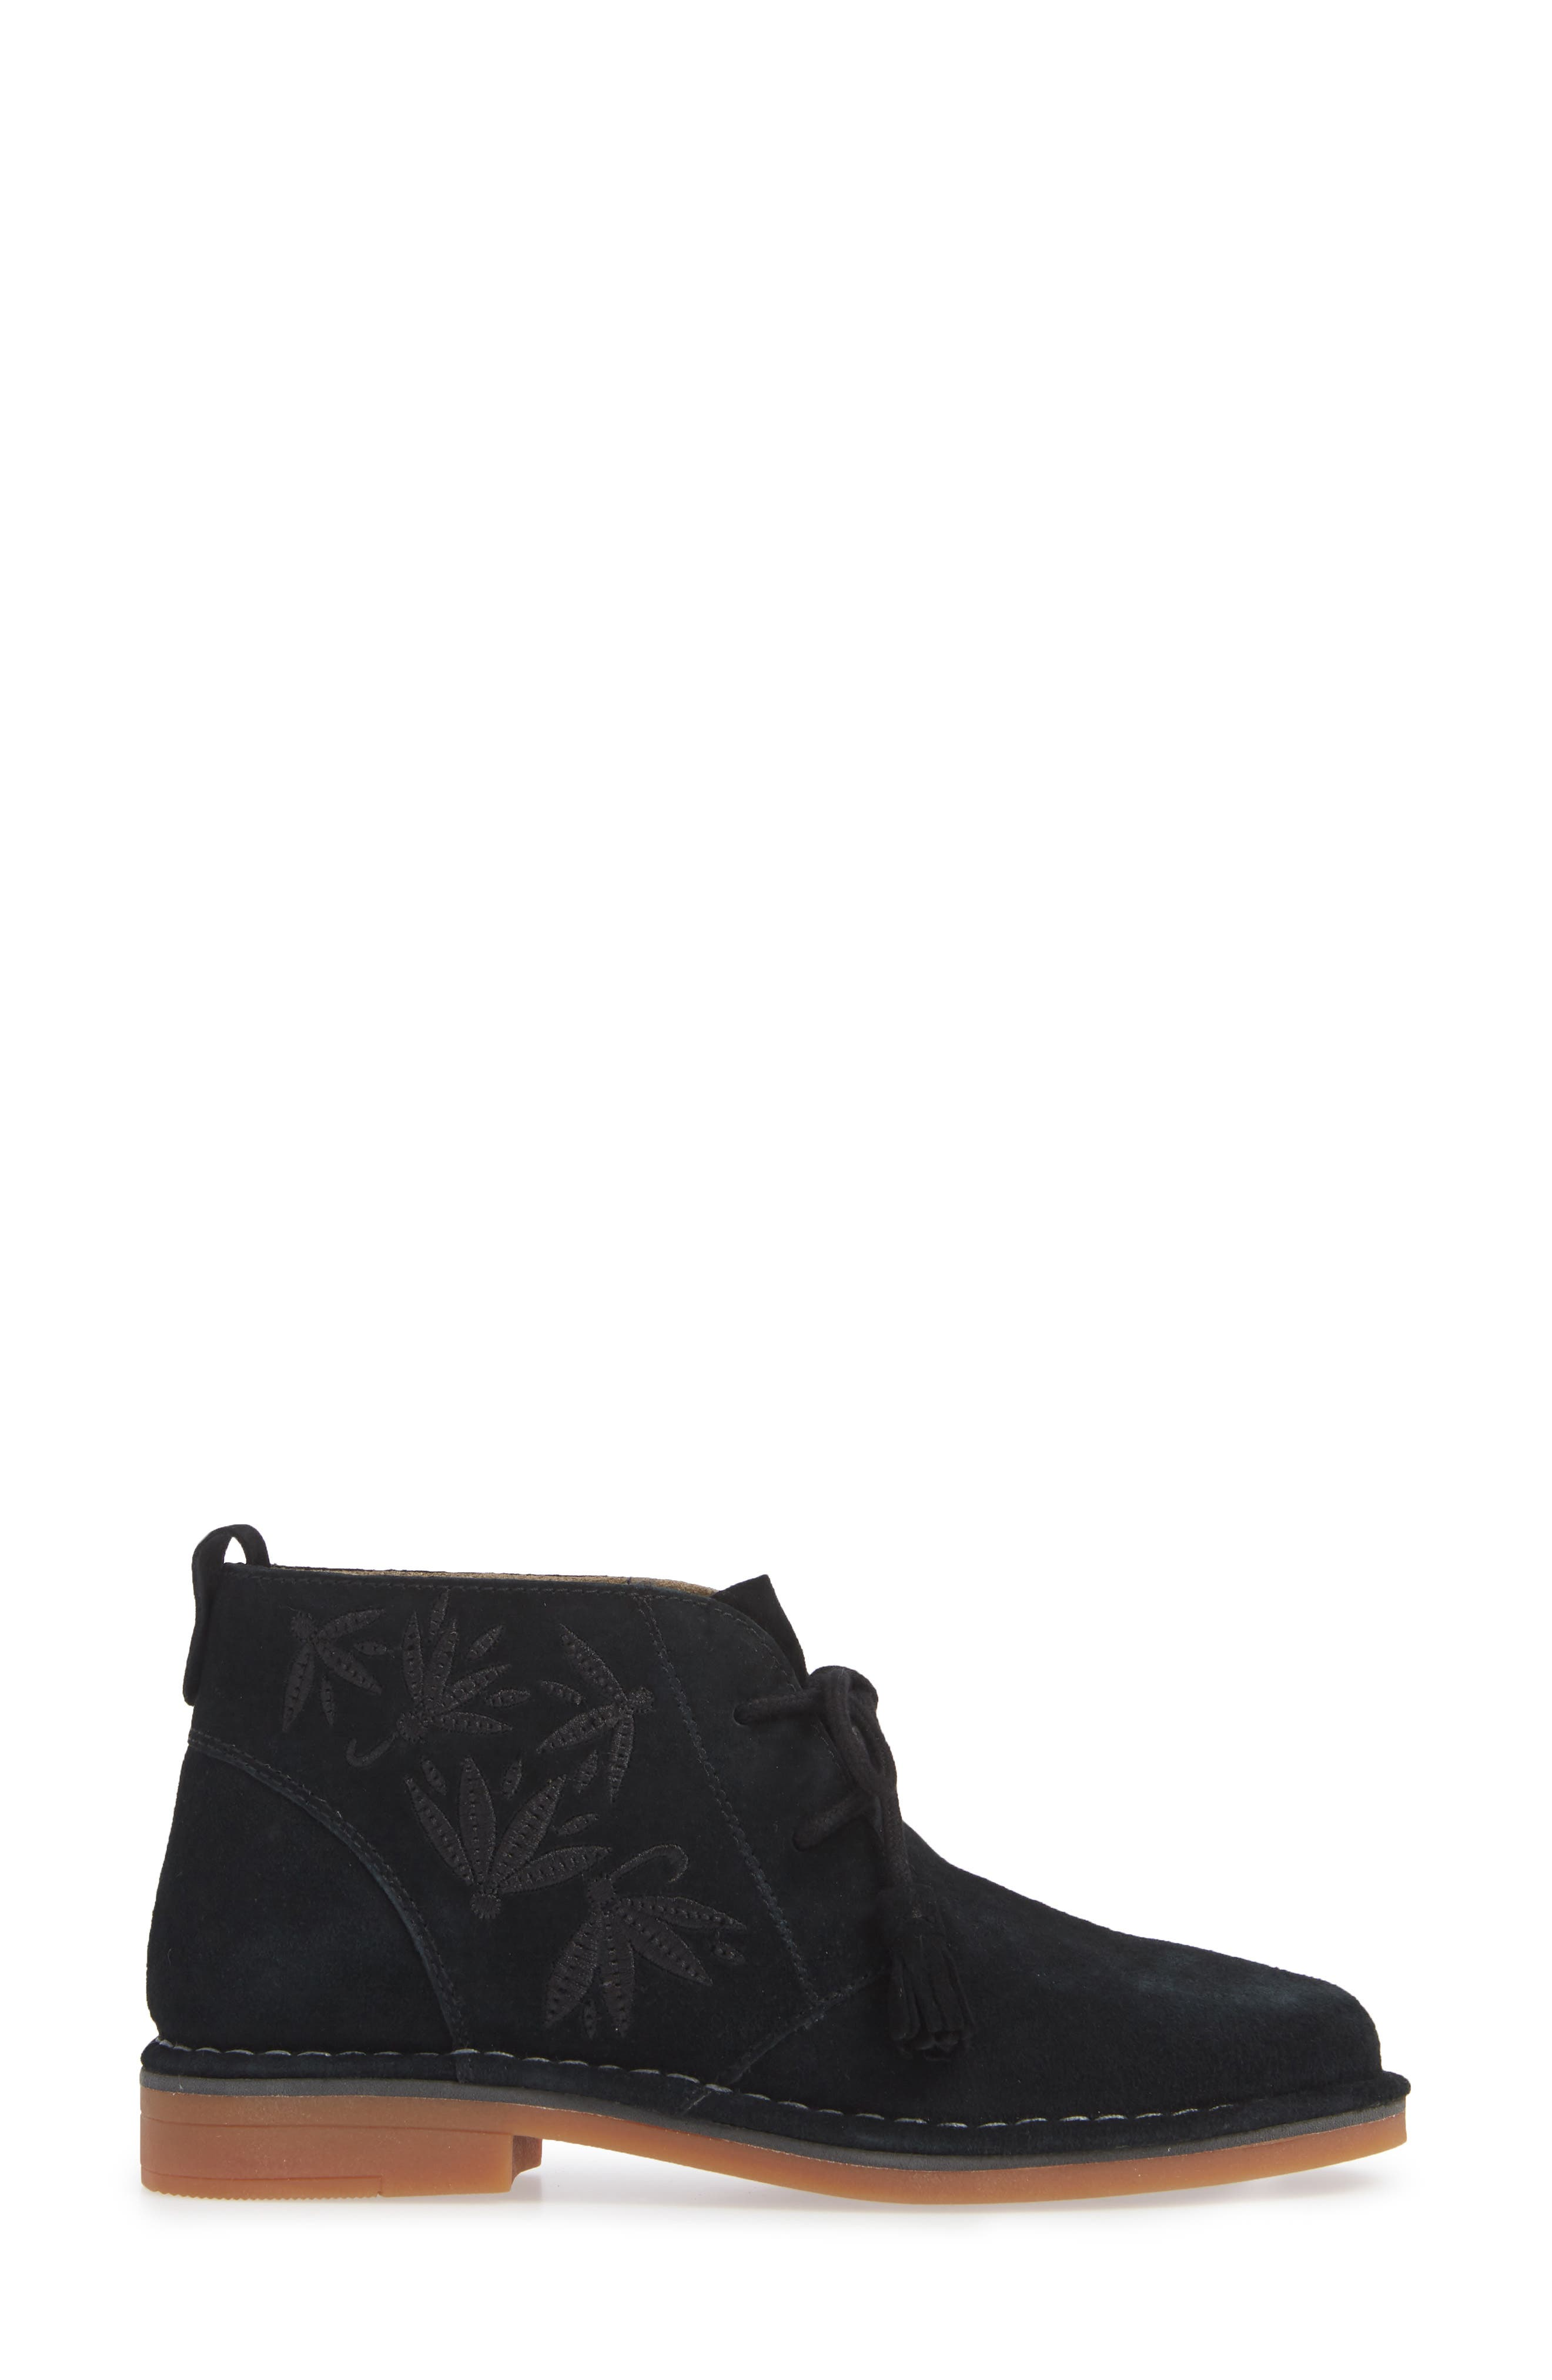 HUSH PUPPIES<SUP>®</SUP>,                             Cyra Catelyn Chukka Bootie,                             Alternate thumbnail 3, color,                             BLACK SUEDE